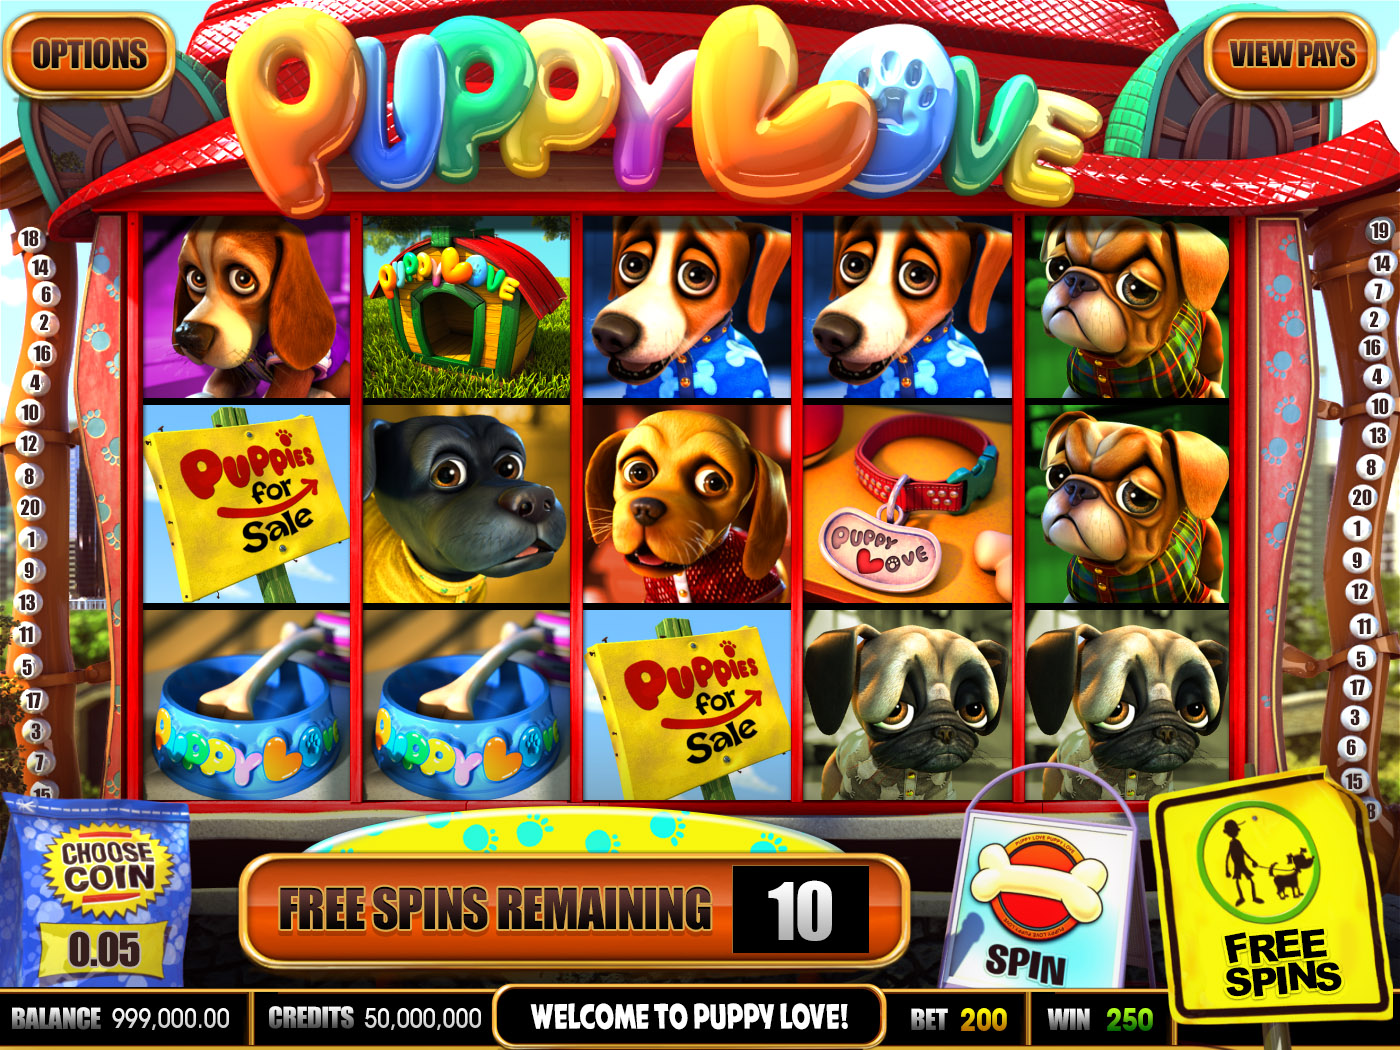 Best online casino that pays real money